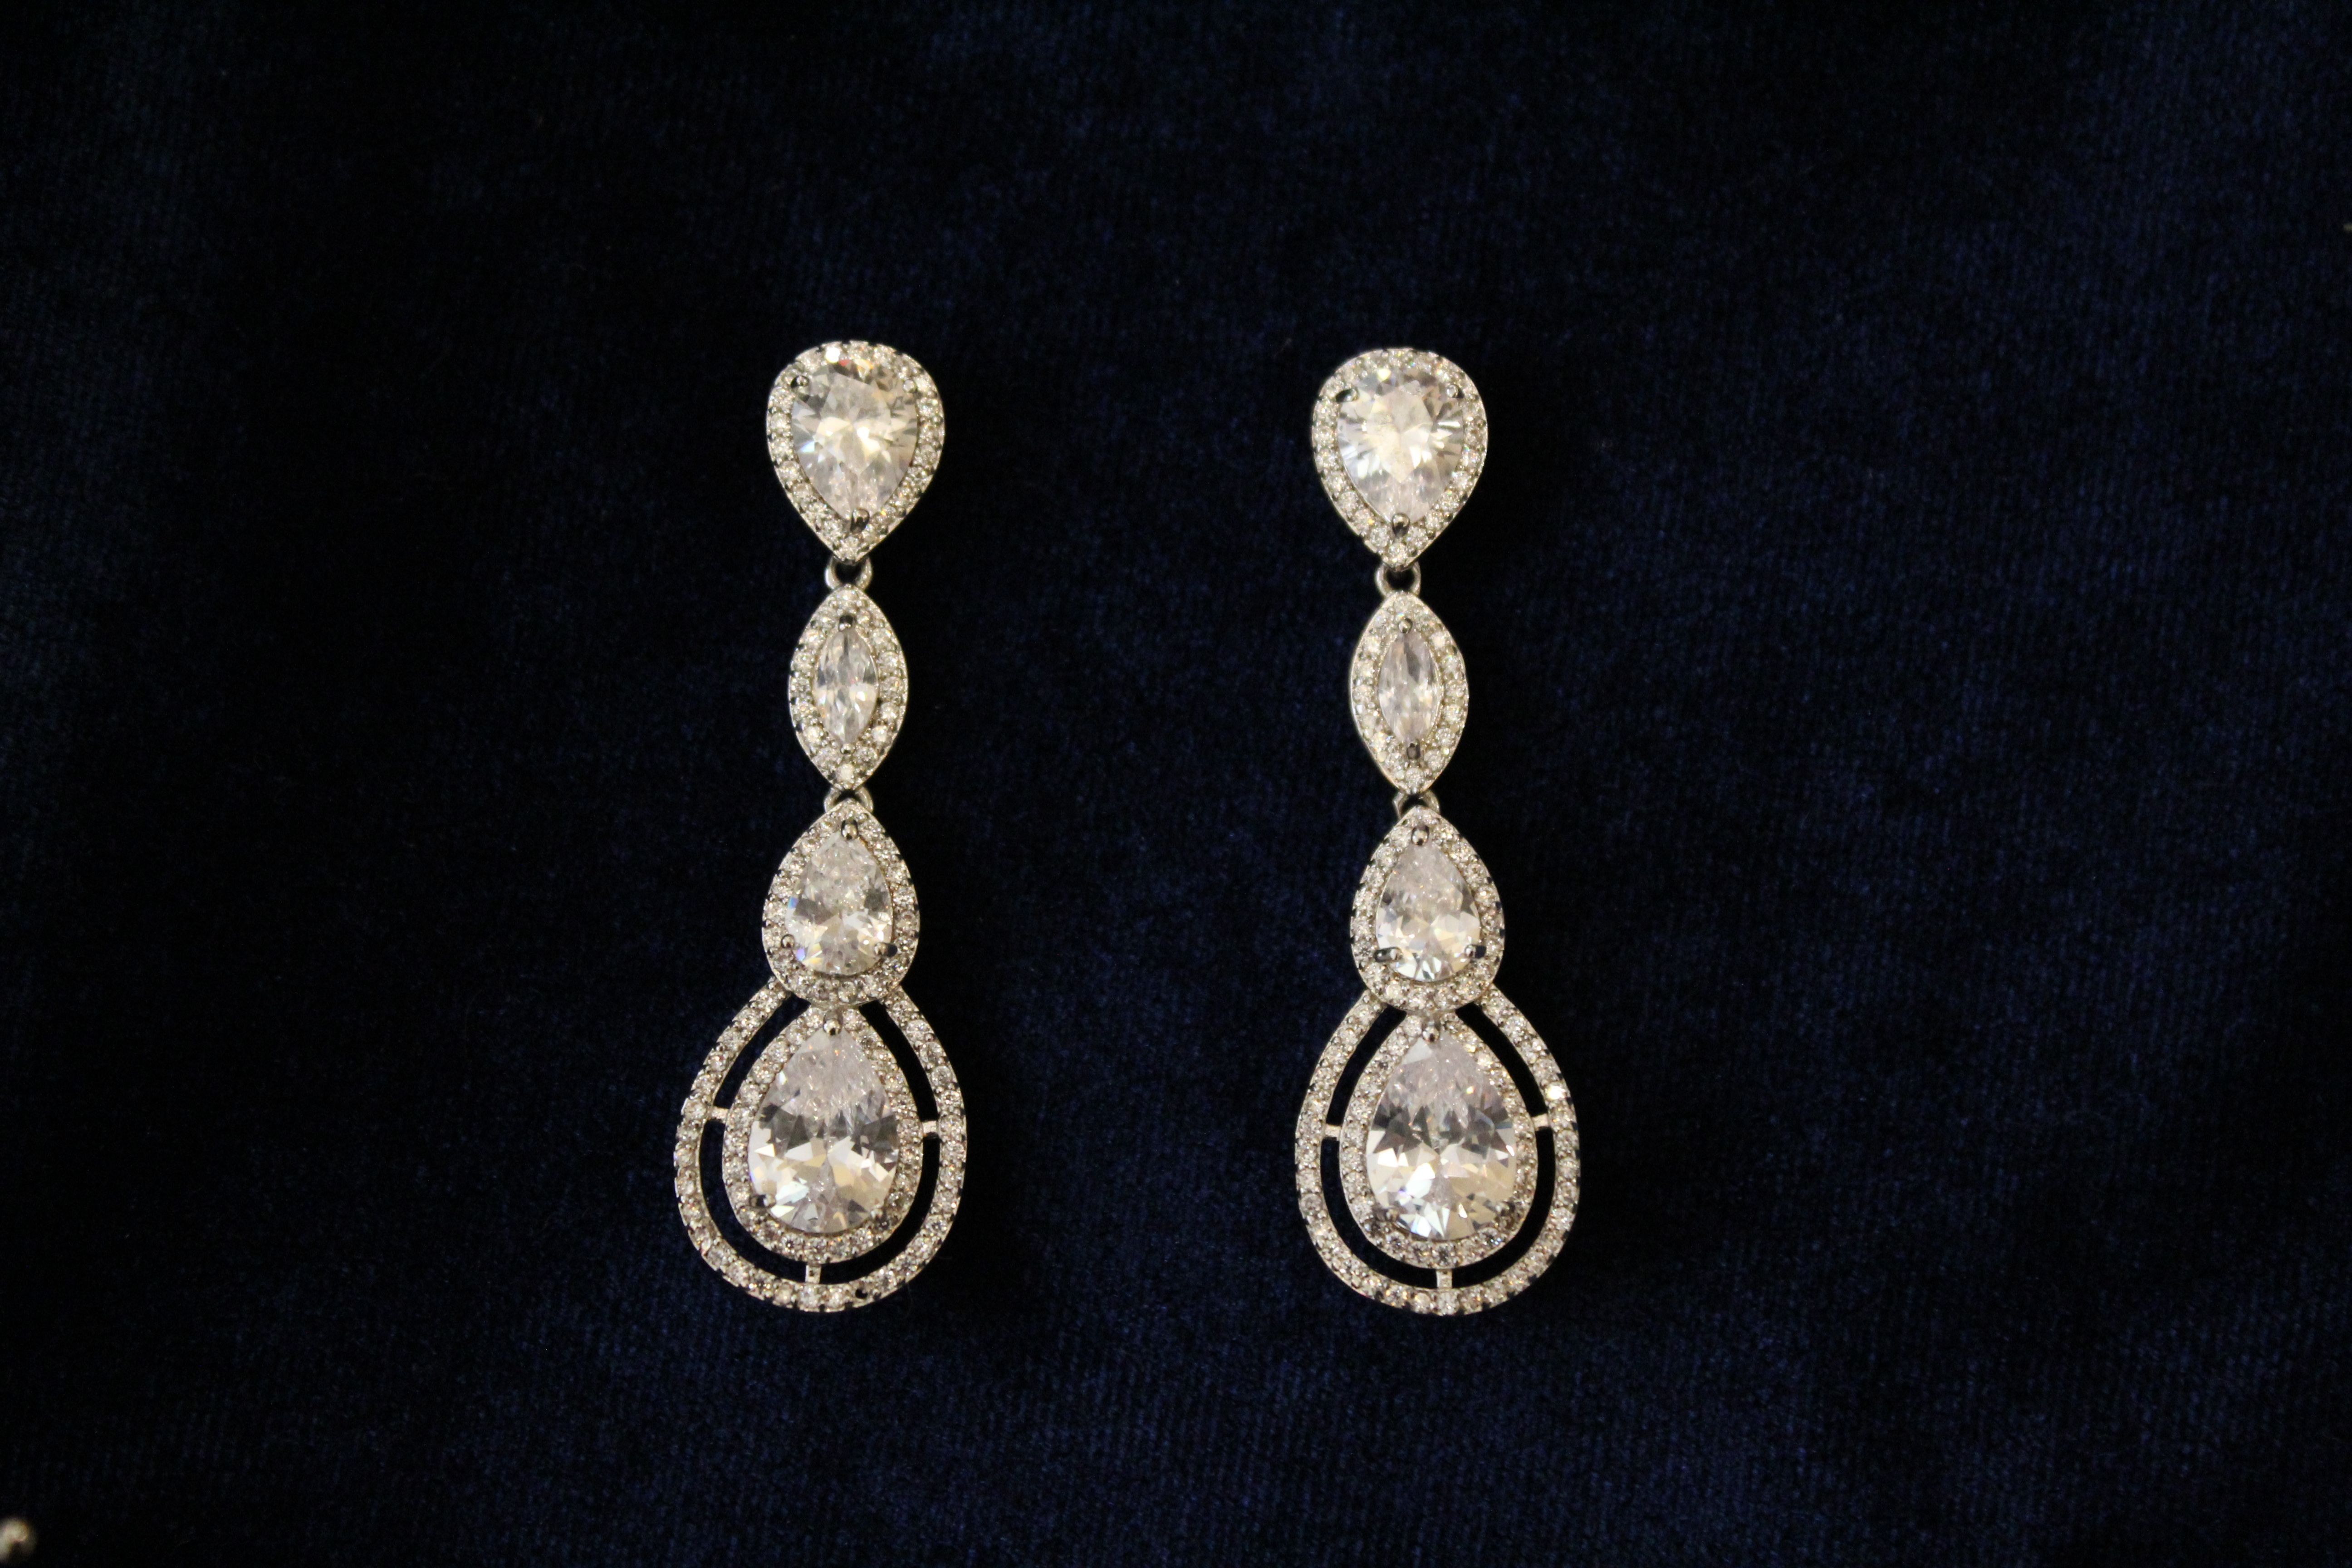 Novia Blanca Gracea pendientes earrings